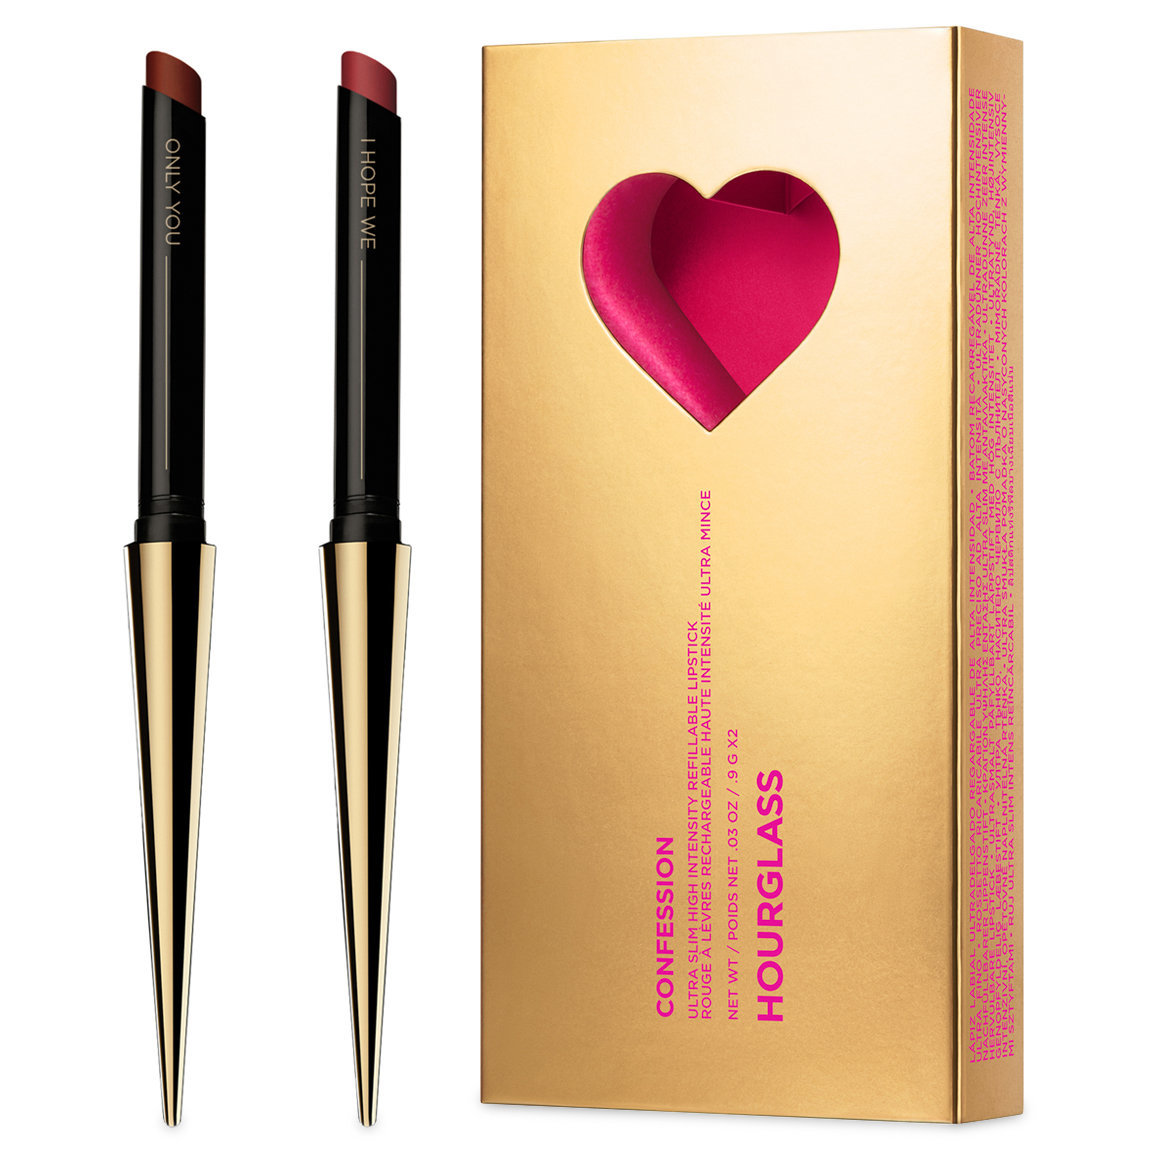 Hourglass Confession Ultra Slim High Intensity Refillable Lipstick Valentine's Day Set Only You / I Hope We product swatch.